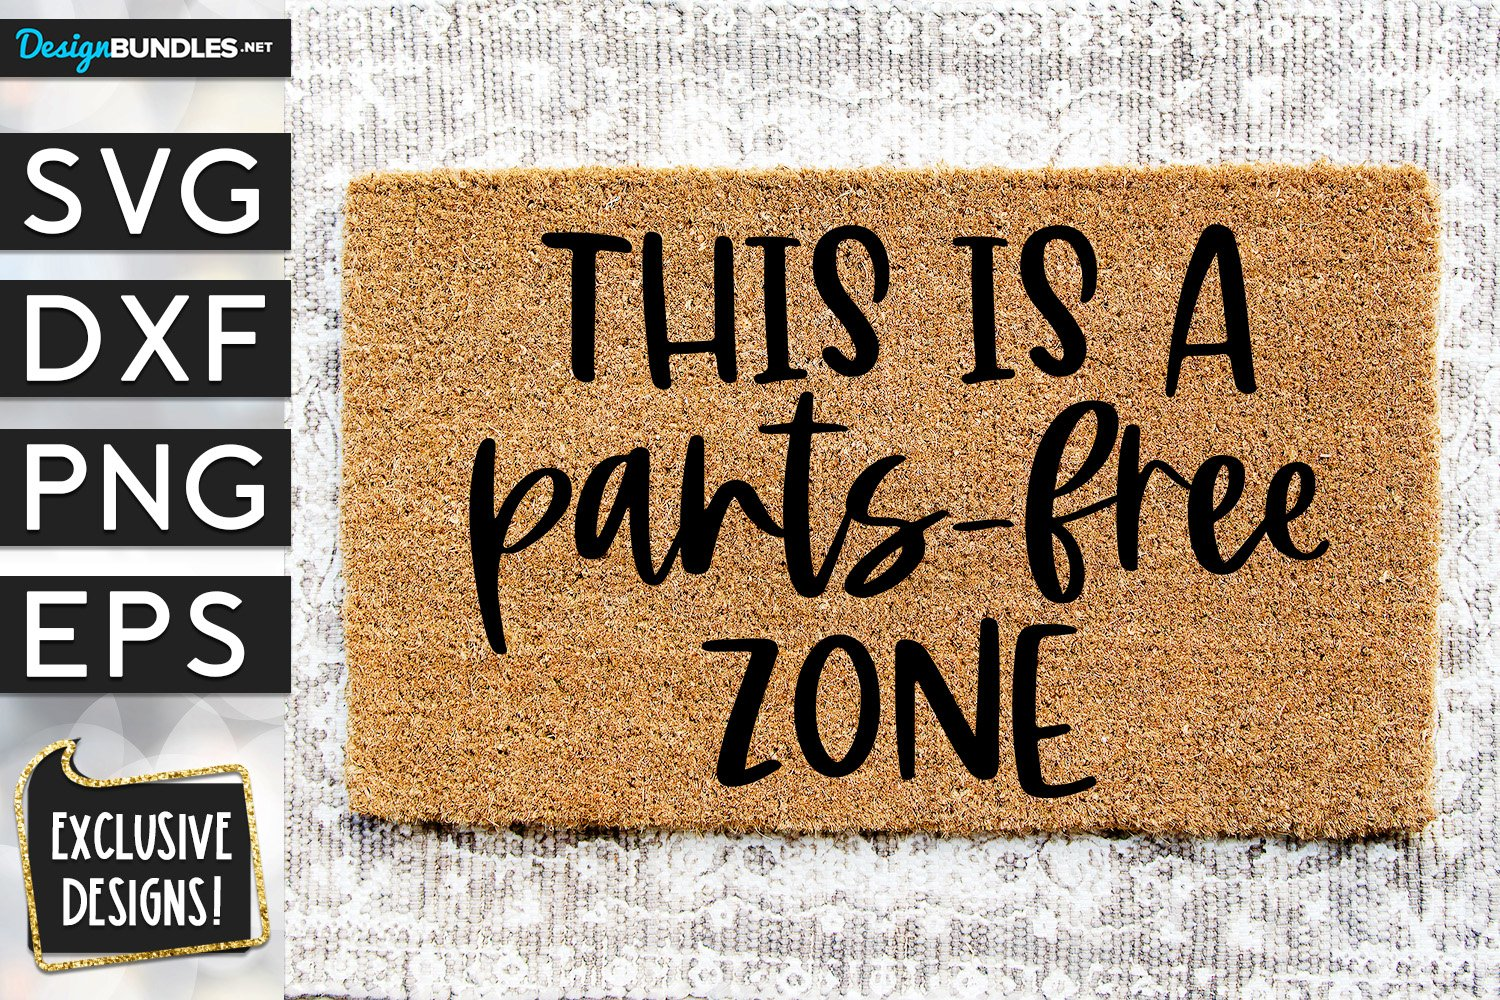 This Is A Pants Free Zone SVG DXF PNG EPS example image 1